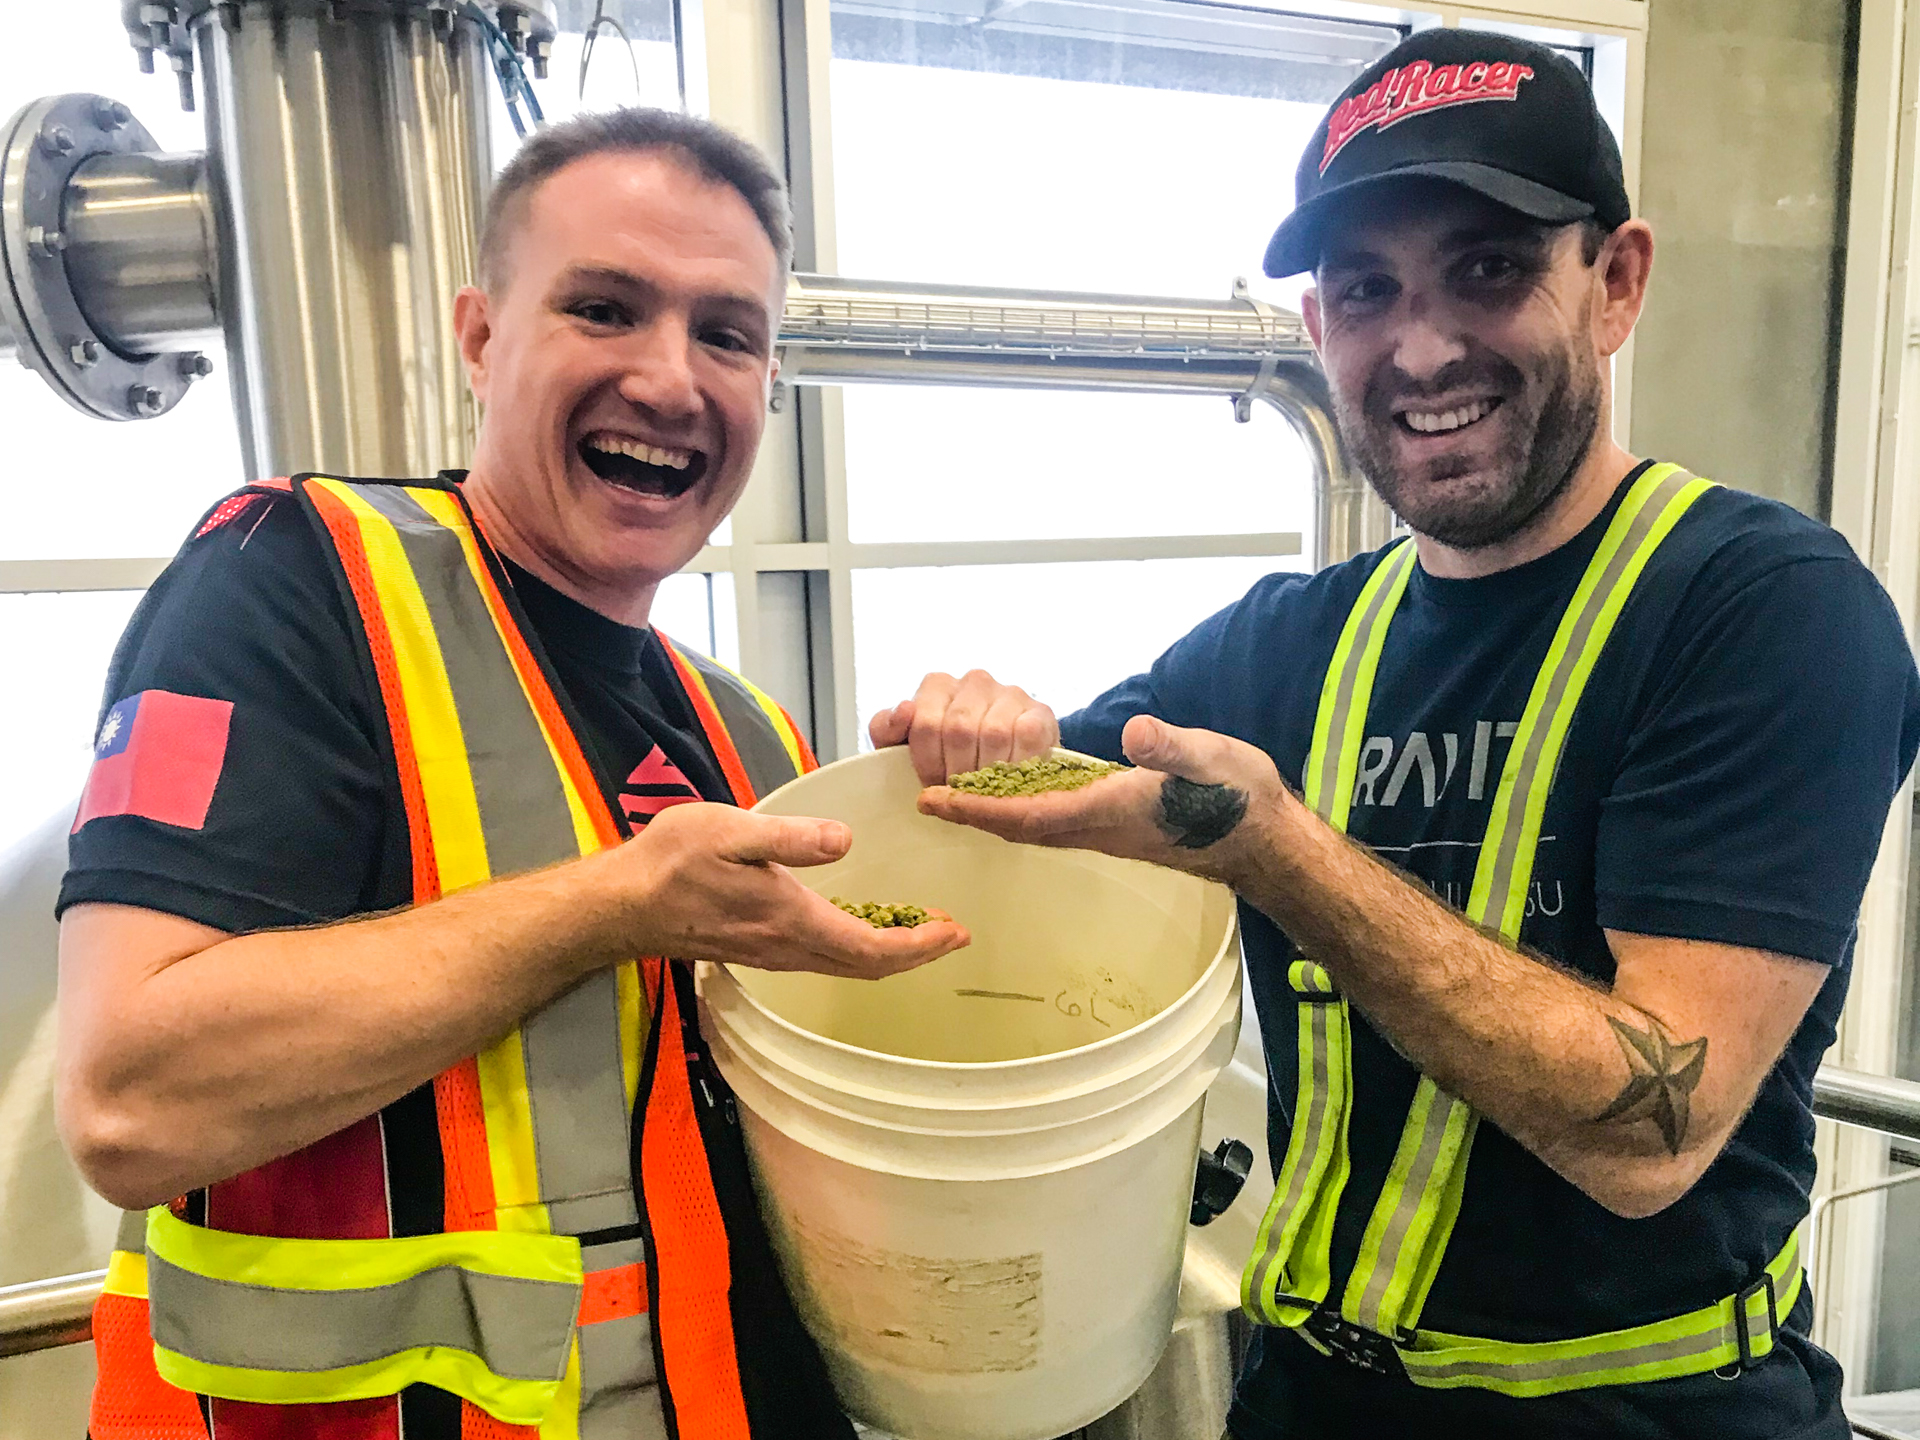 Red Racer Redpoint Brewing Co. Collaboration Brew Day - Spencer and Zak with Hops